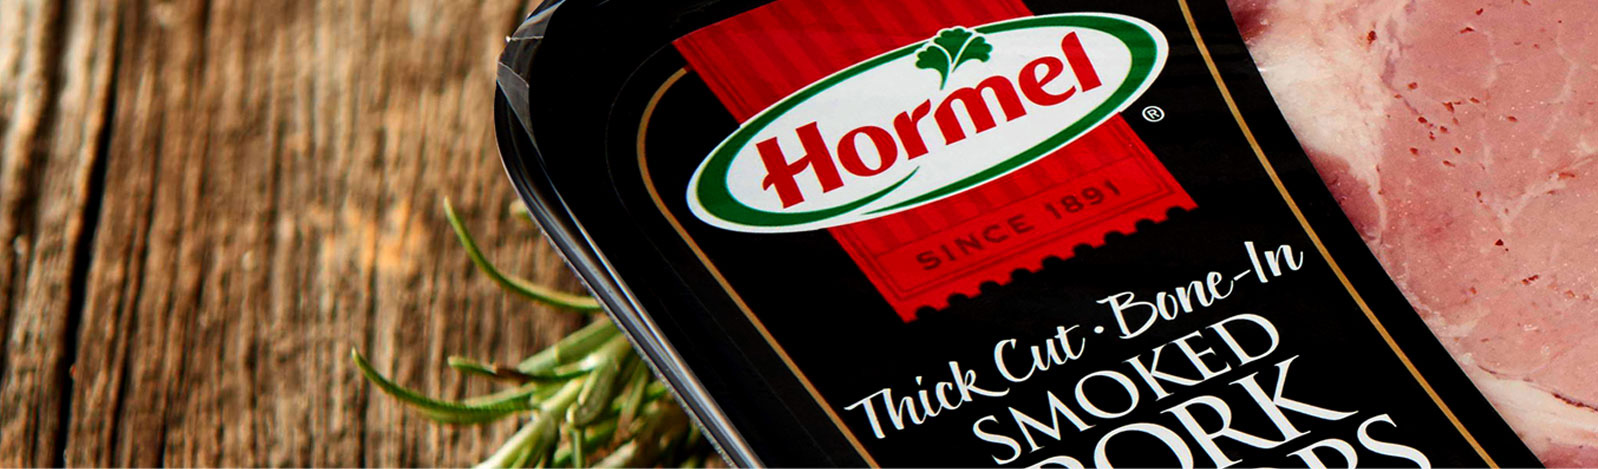 Product label solutions for winning brands: Hormel